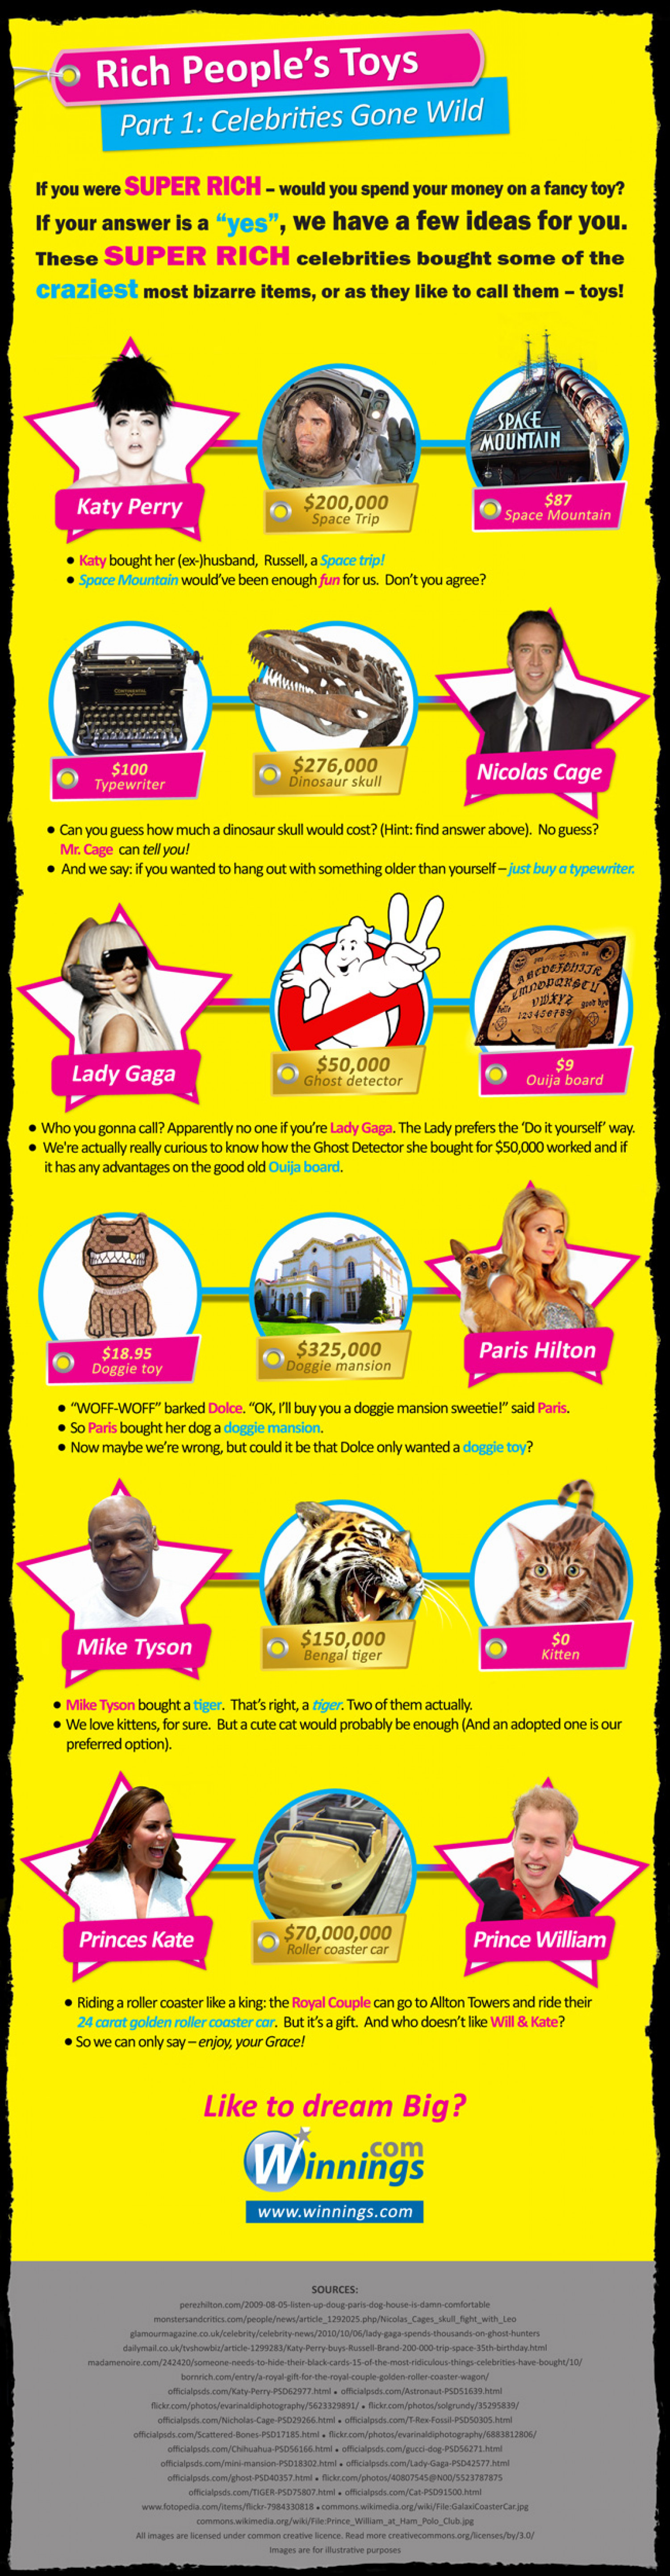 6 Crazy Rich Items Celebrities Bought Infographic